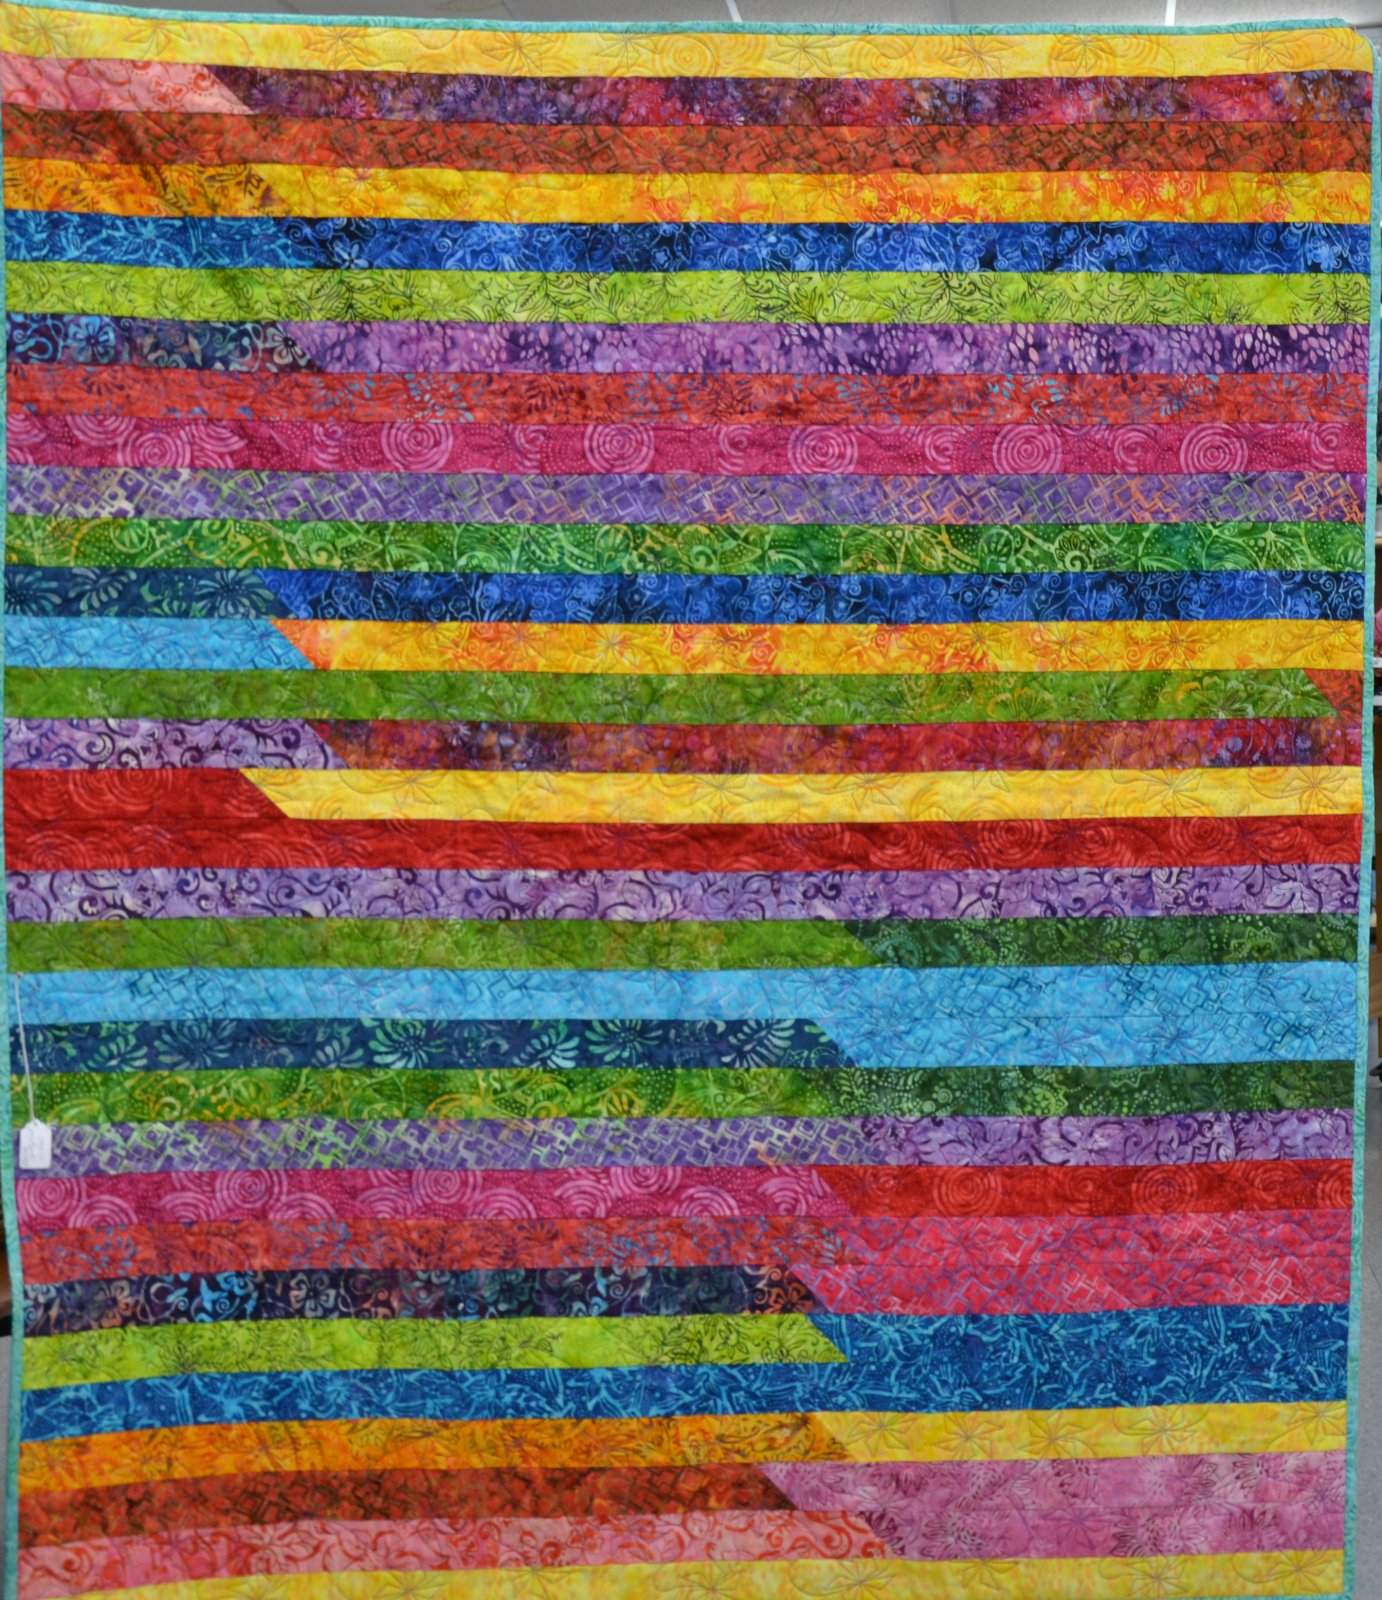 Batik Jelly Roll Quilt 51 x 60